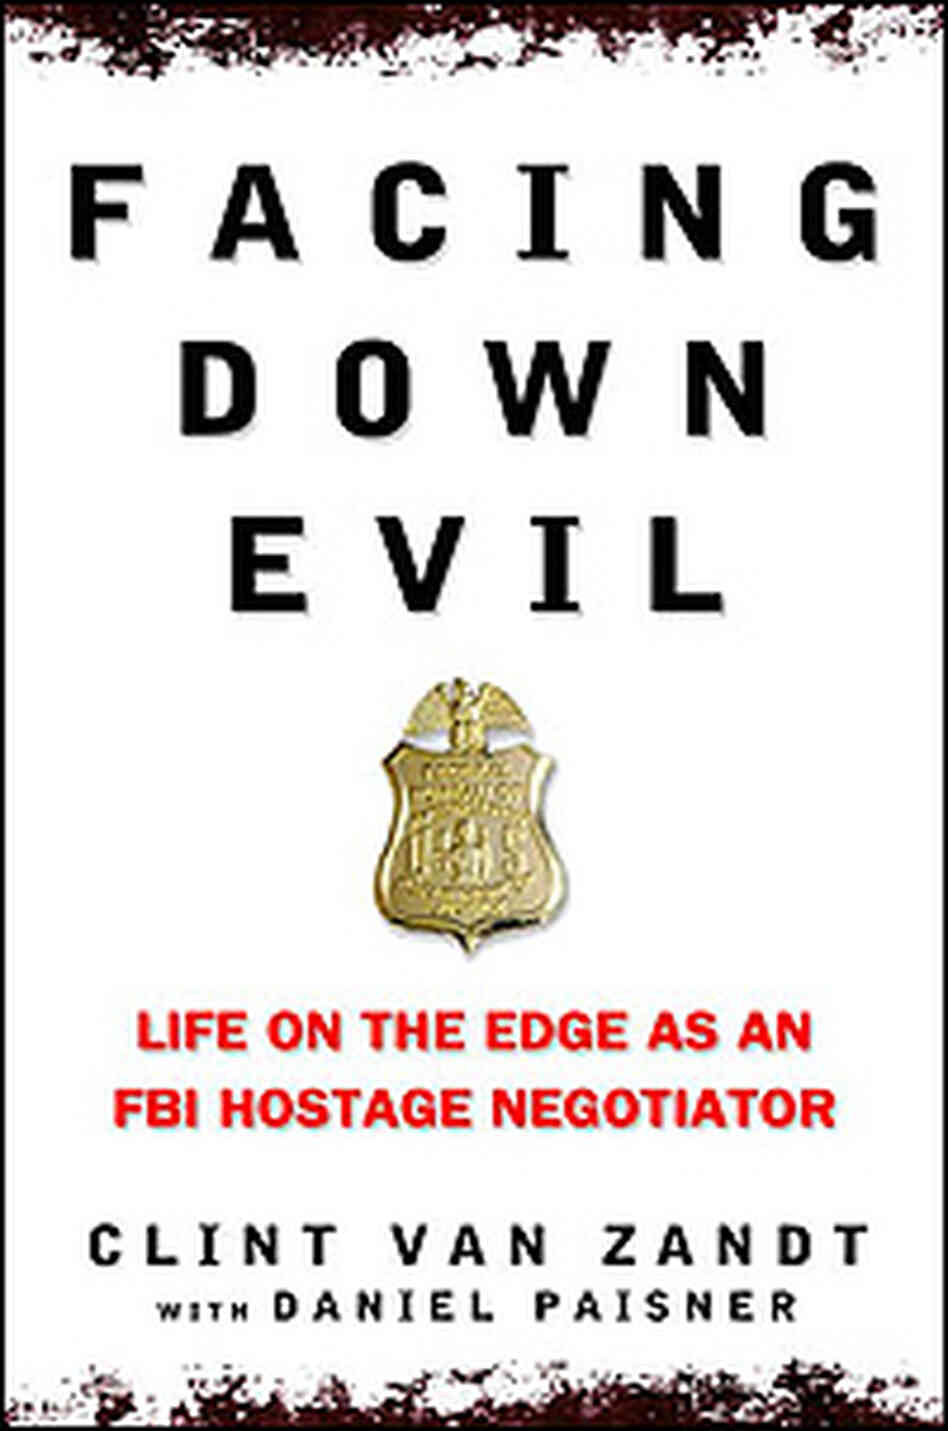 Cover of 'Facing Down Evil' shows FBI badge.